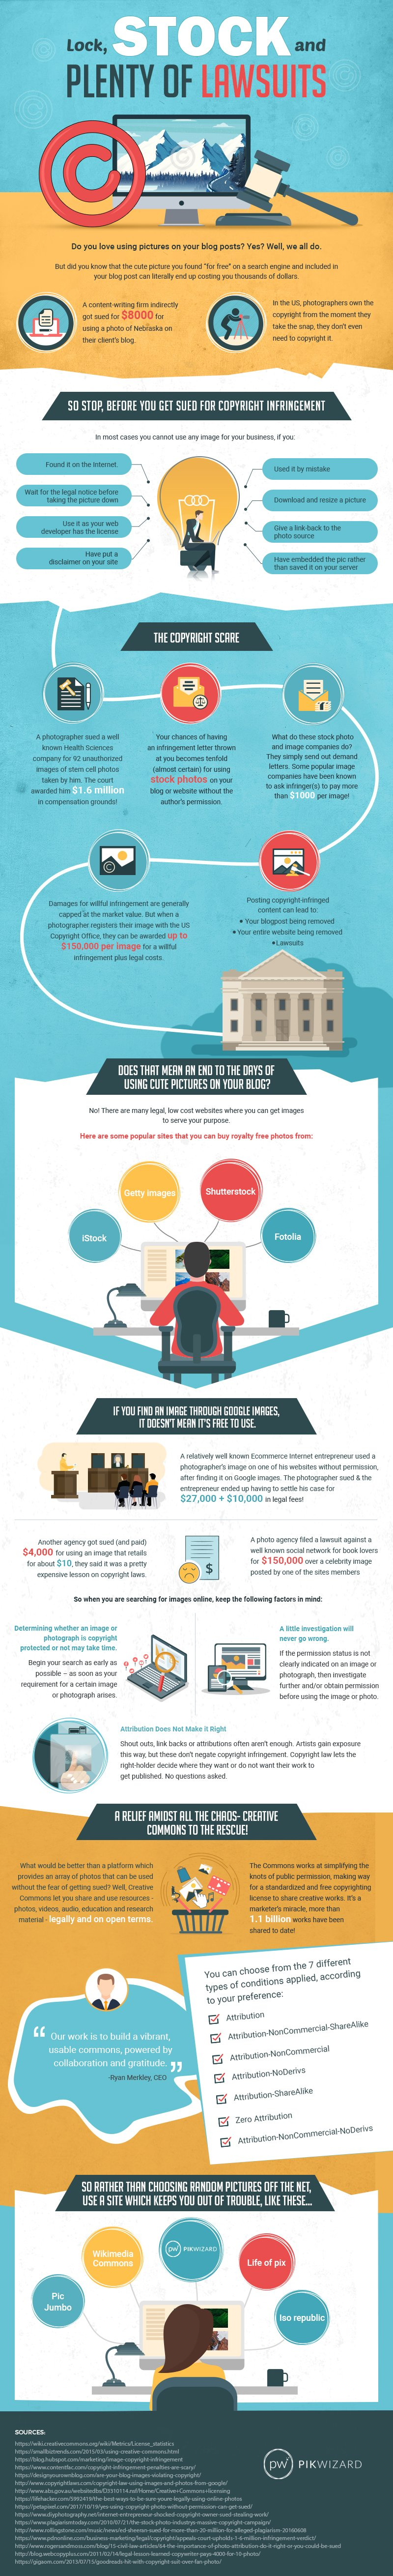 Infographic on image copyright laws